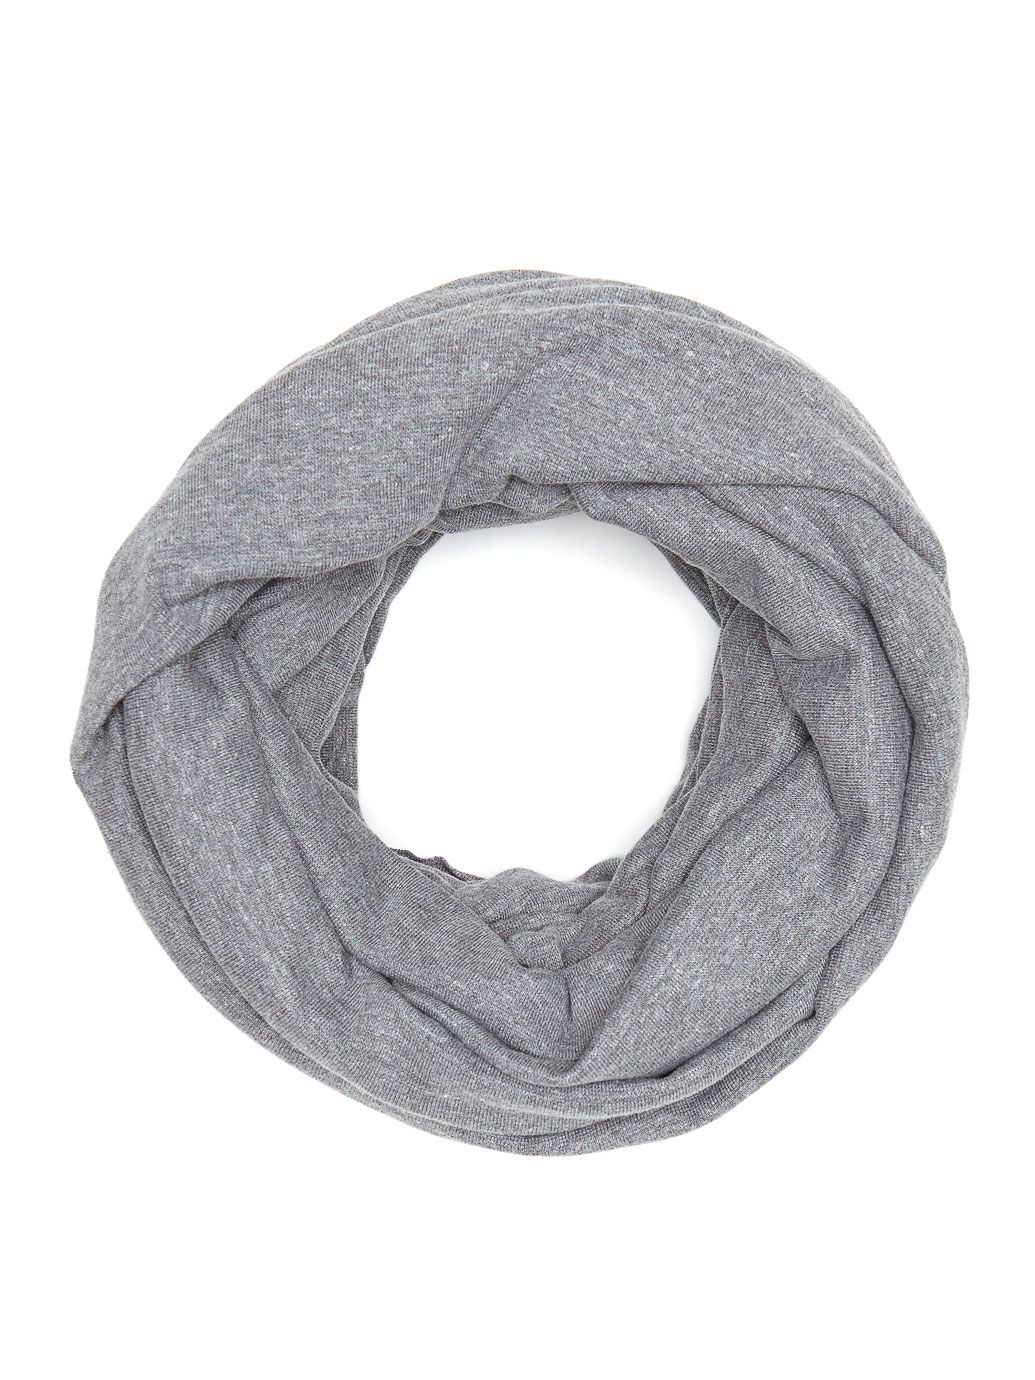 American Apparel Circle Scarf  (this thing really unrolls to be huge)